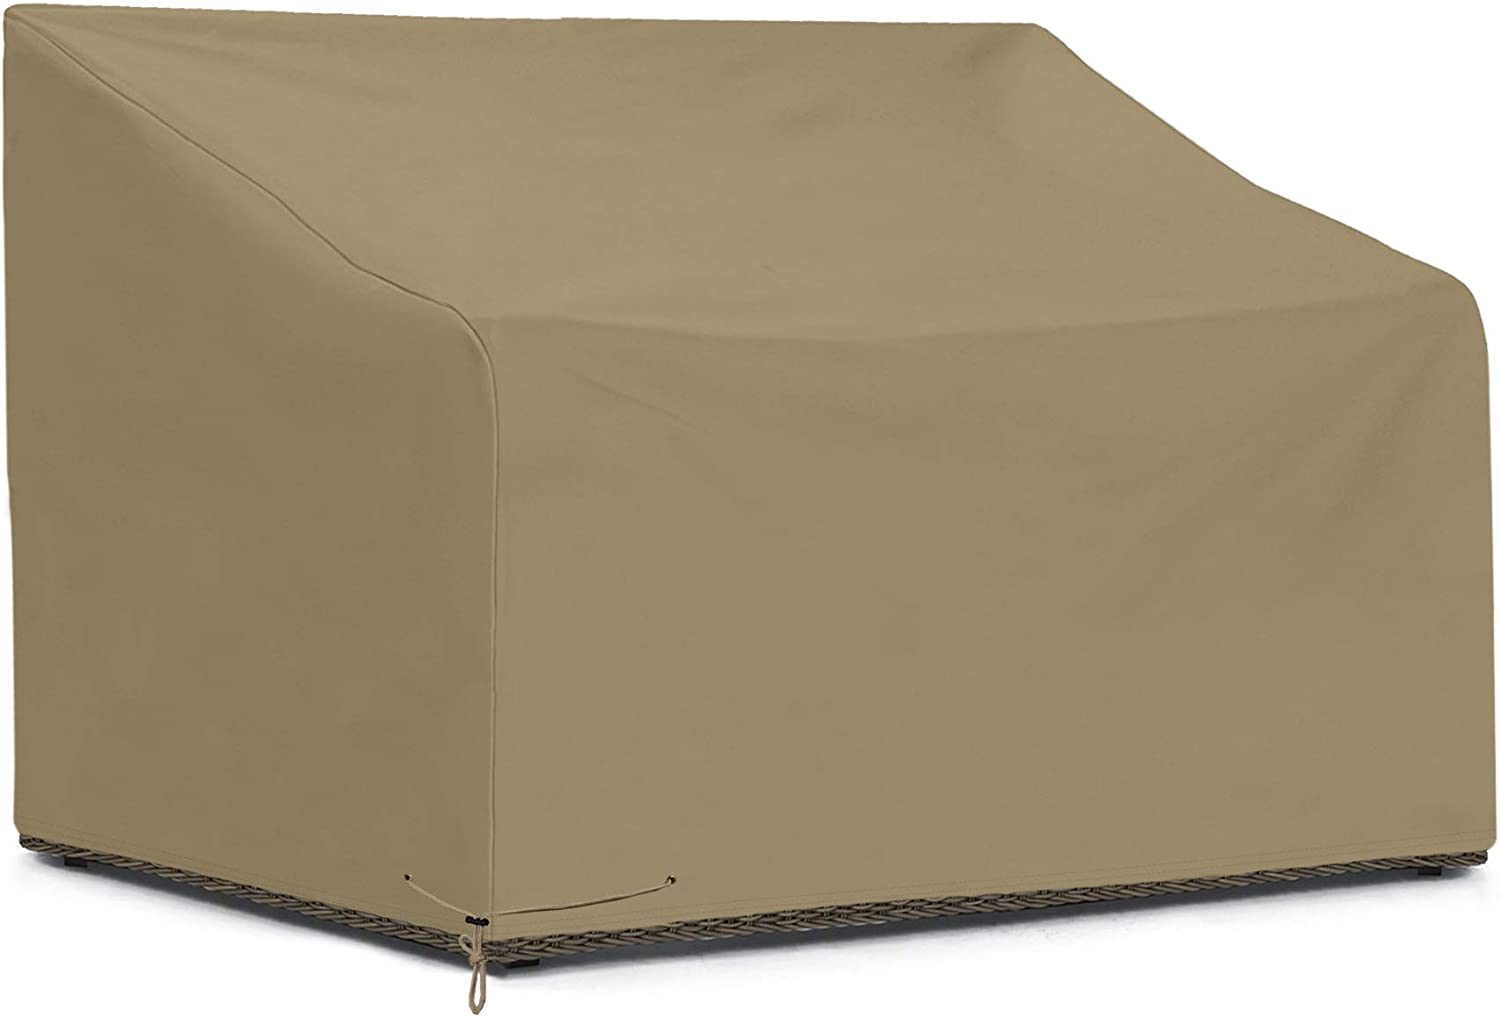 SunPatio Outdoor Sofa Cover, Patio Heavy Duty Waterproof Deep Seat Loveseat Cover with Sealed Seam, Patio Furniture Cover, 54''L x 40''W x 32''/22''H, FadeStop Material, All Weather Protection, Taupe